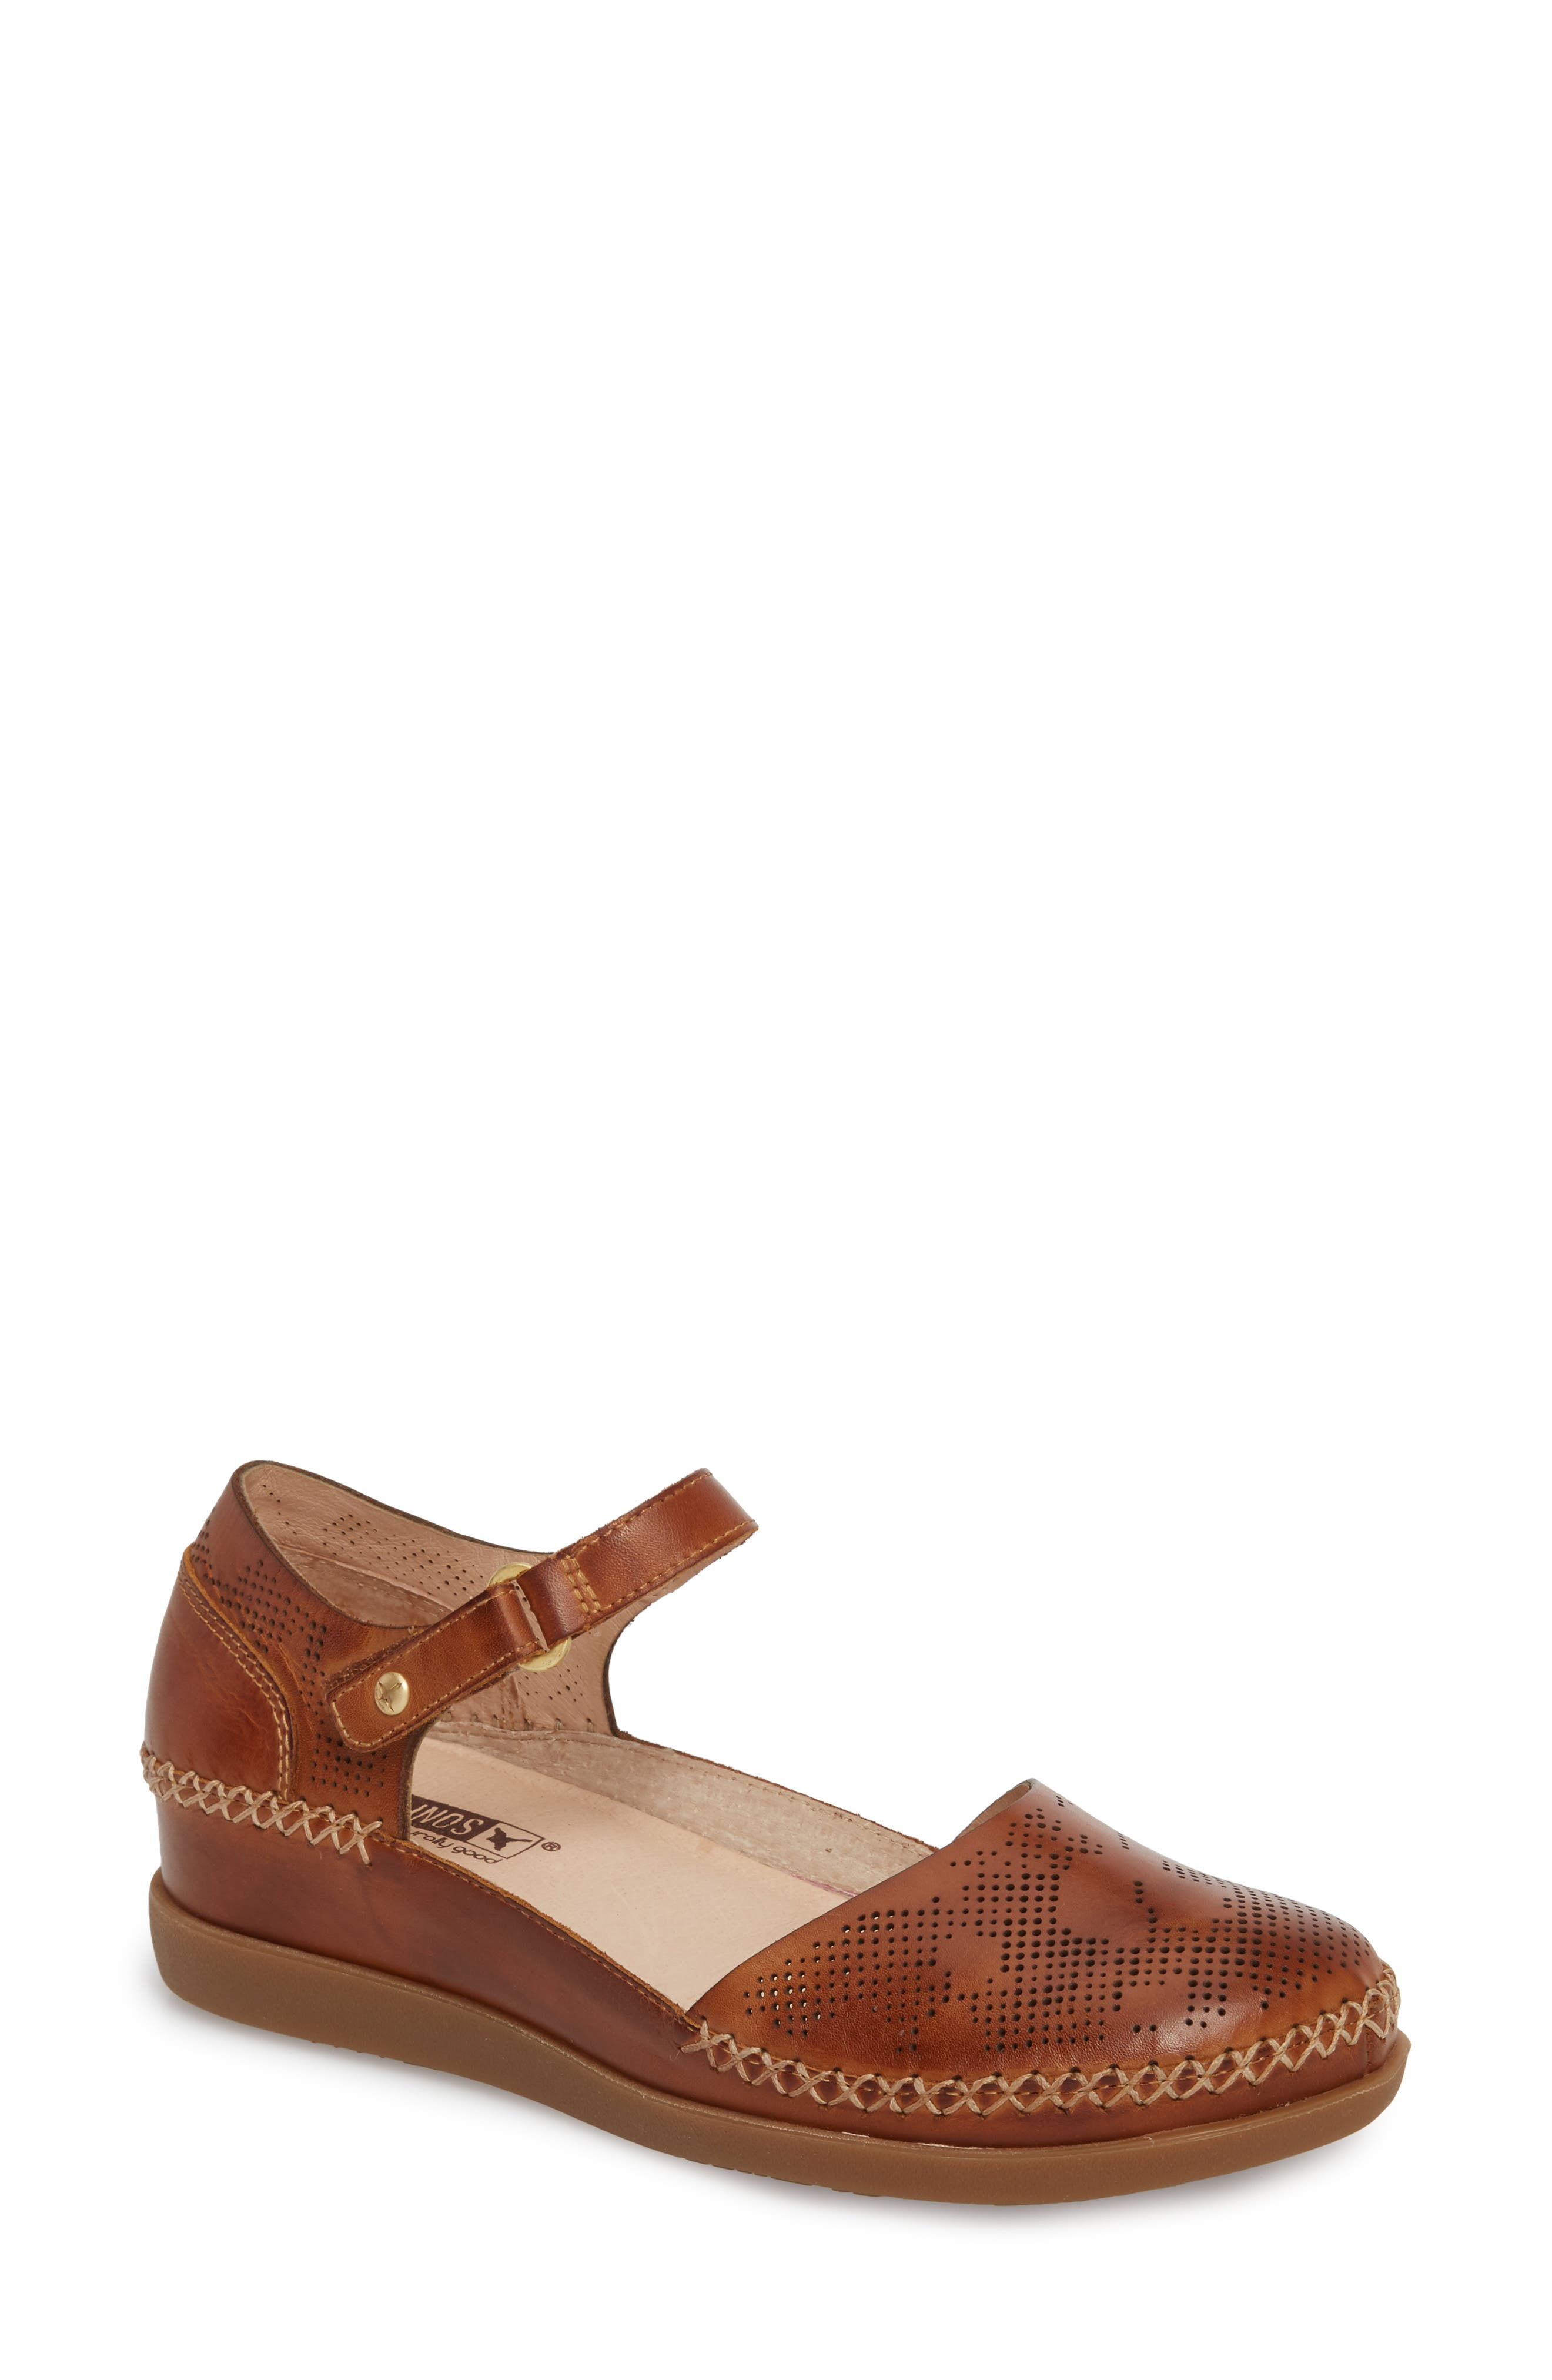 Cadaques Flat,                             Main thumbnail 1, color,                             BRANDY LEATHER